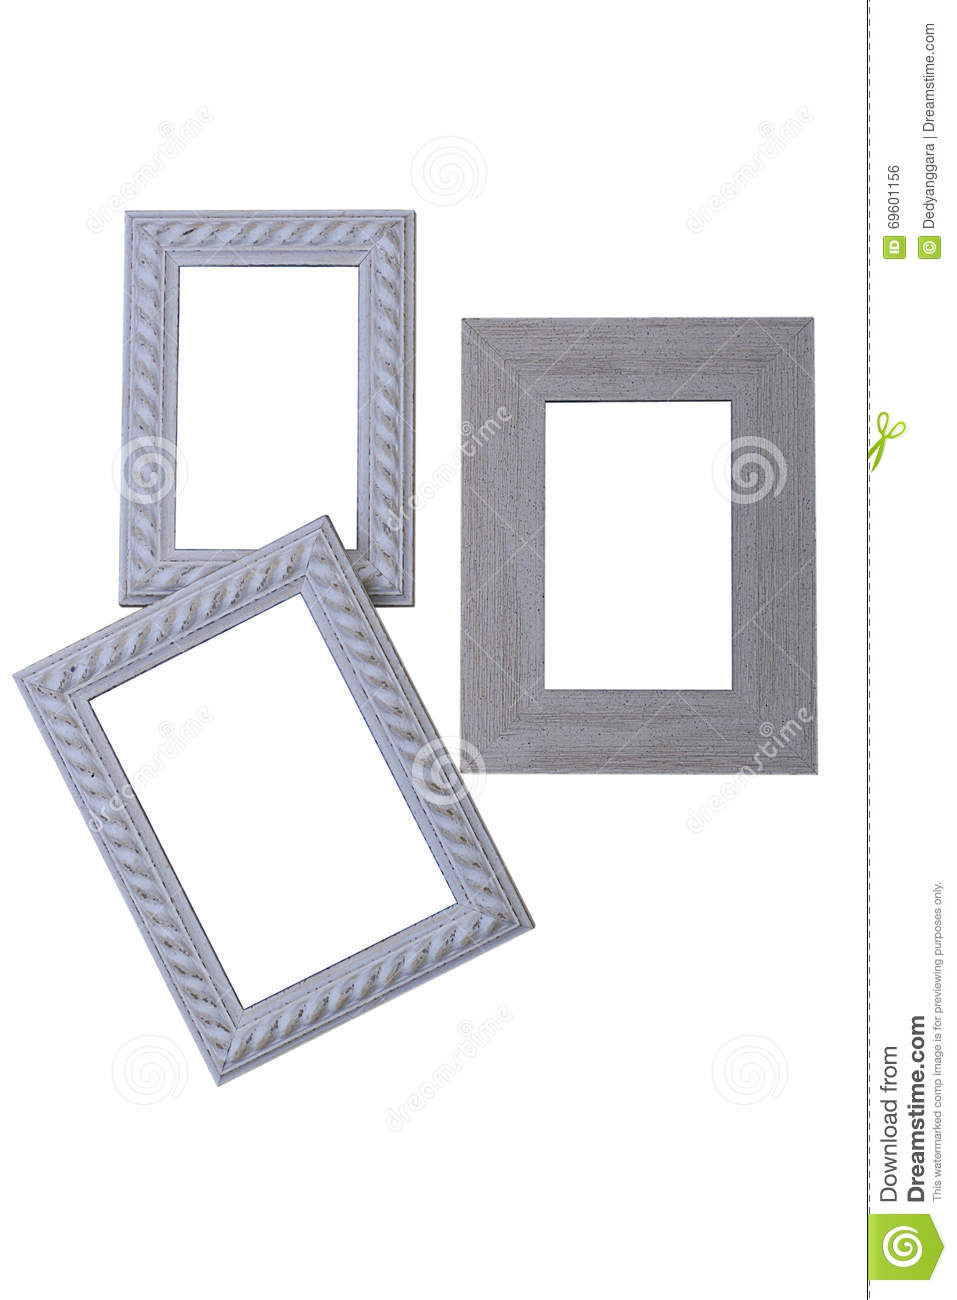 Frames Of Various Sizes And Types Stock Photo - Image of painting ...